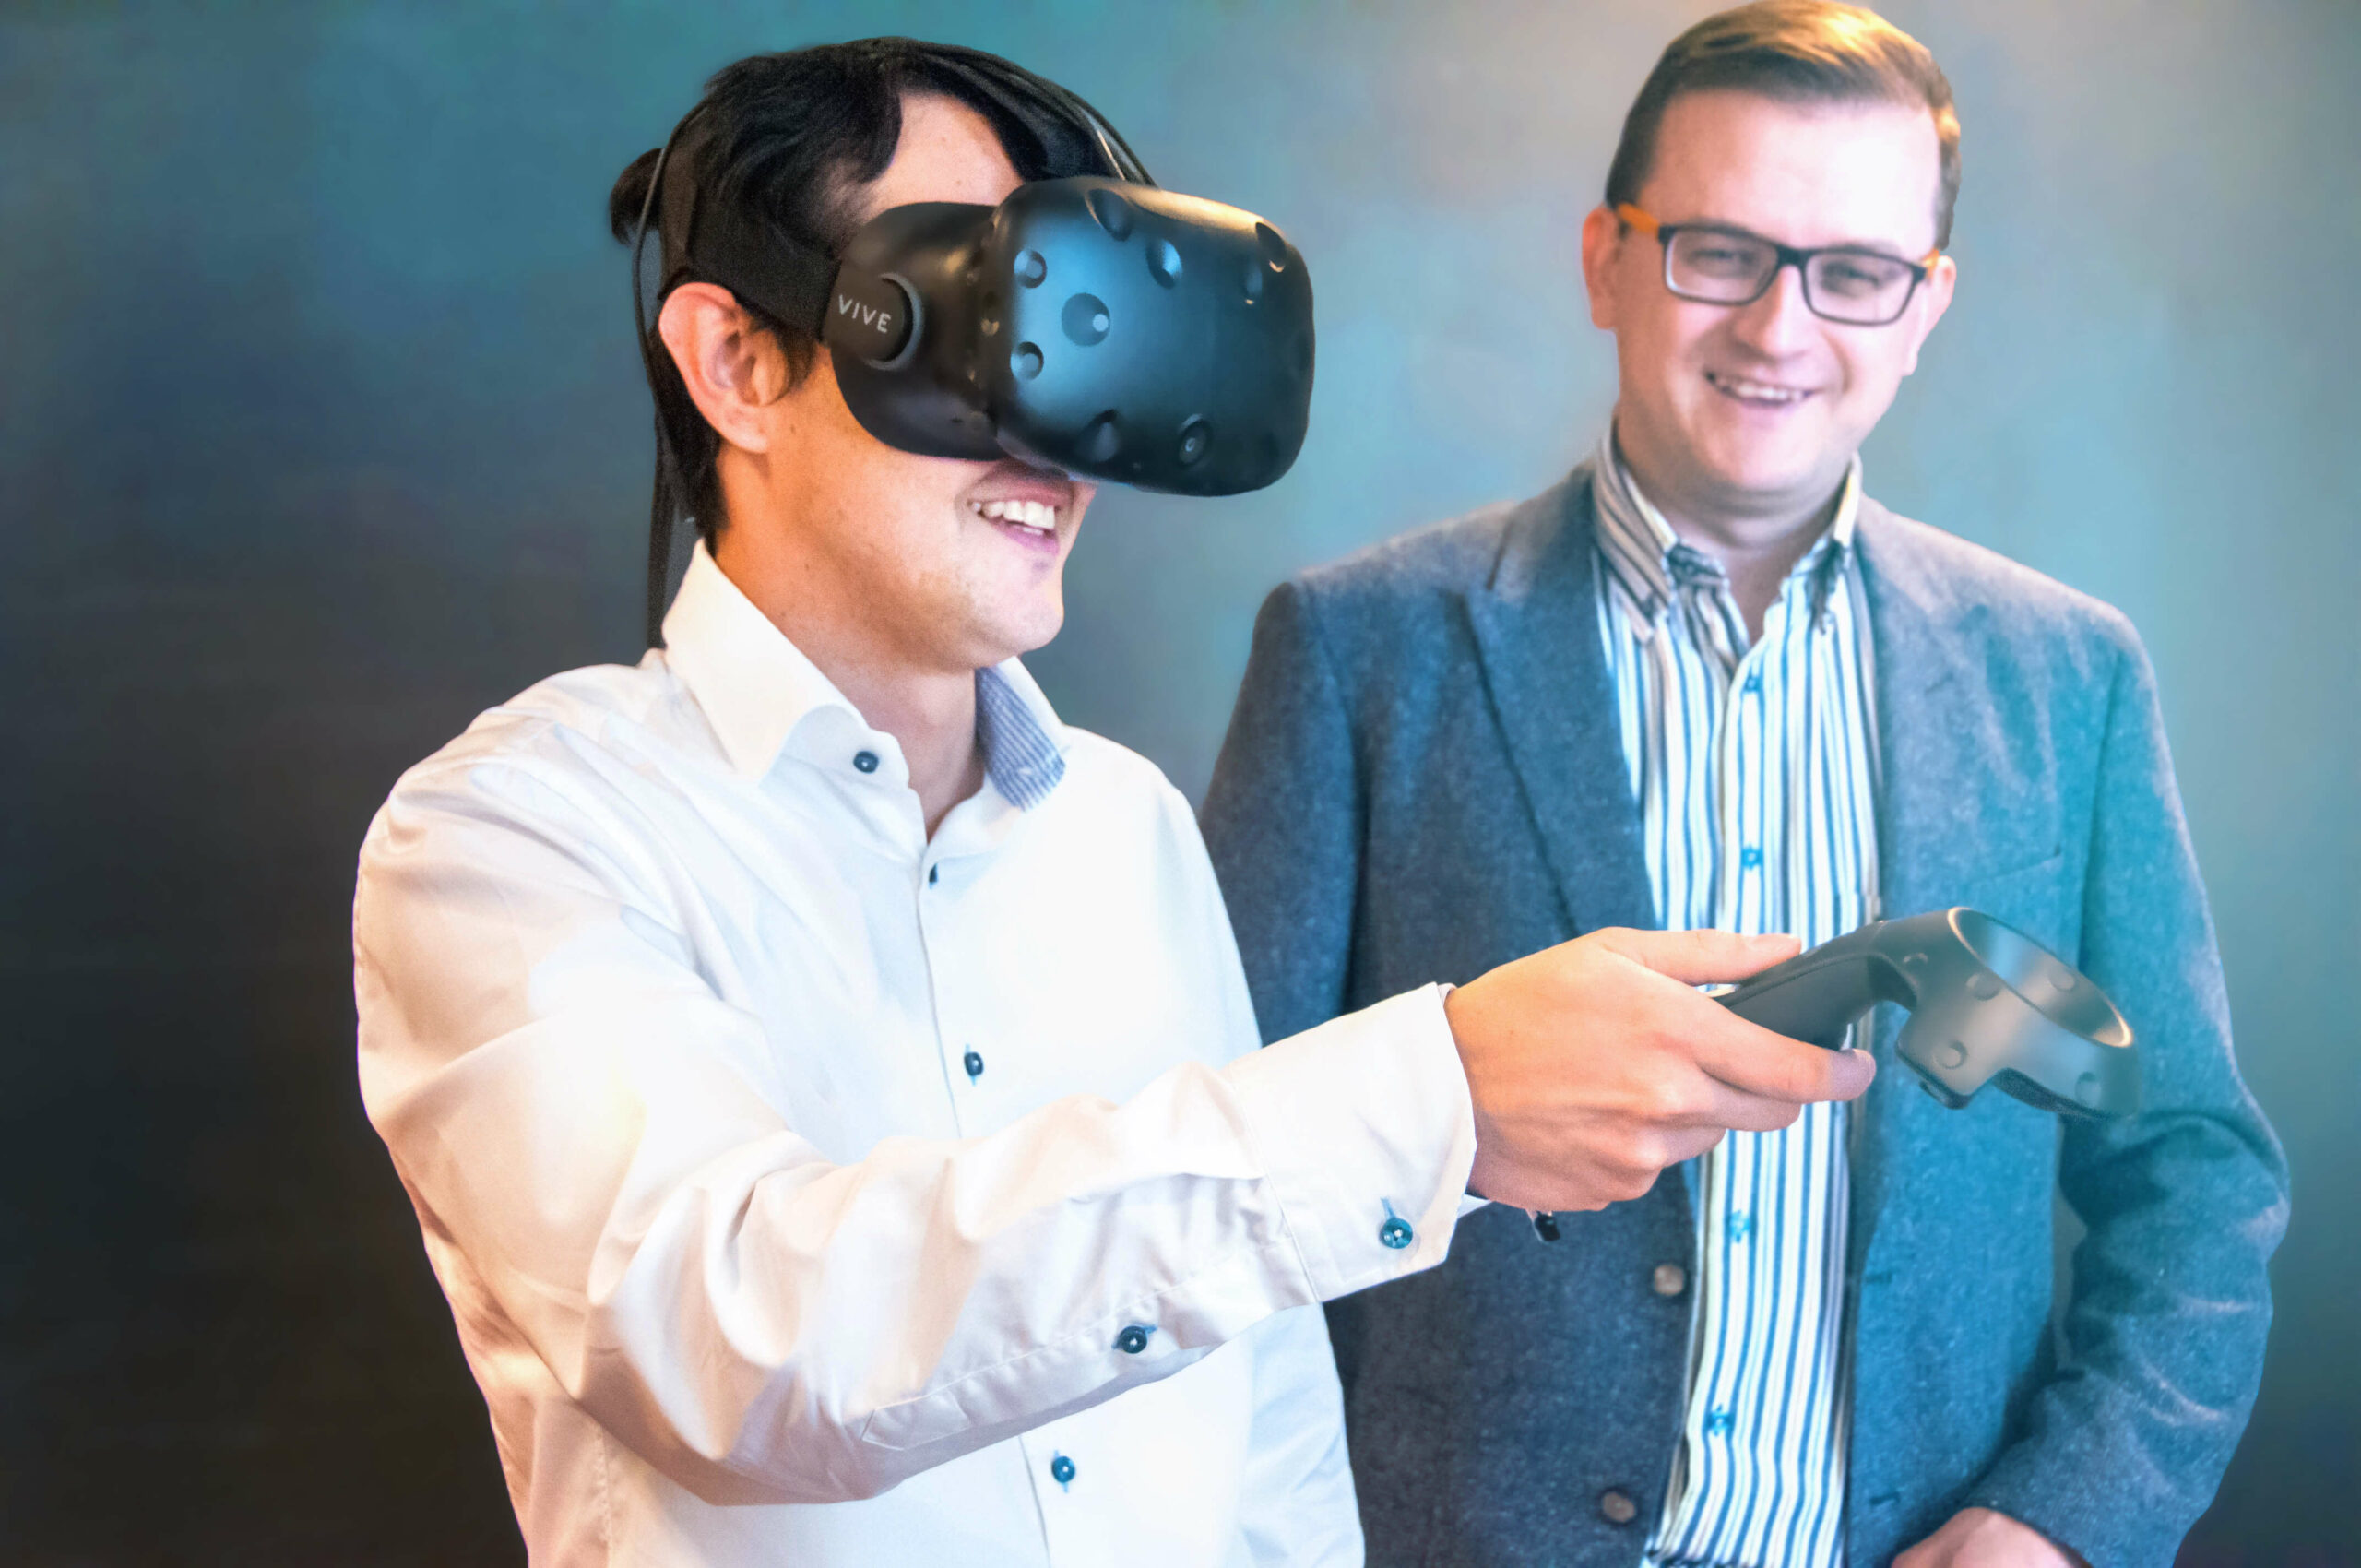 an expert instructing a person to use Visual Components Experience with VR glasses